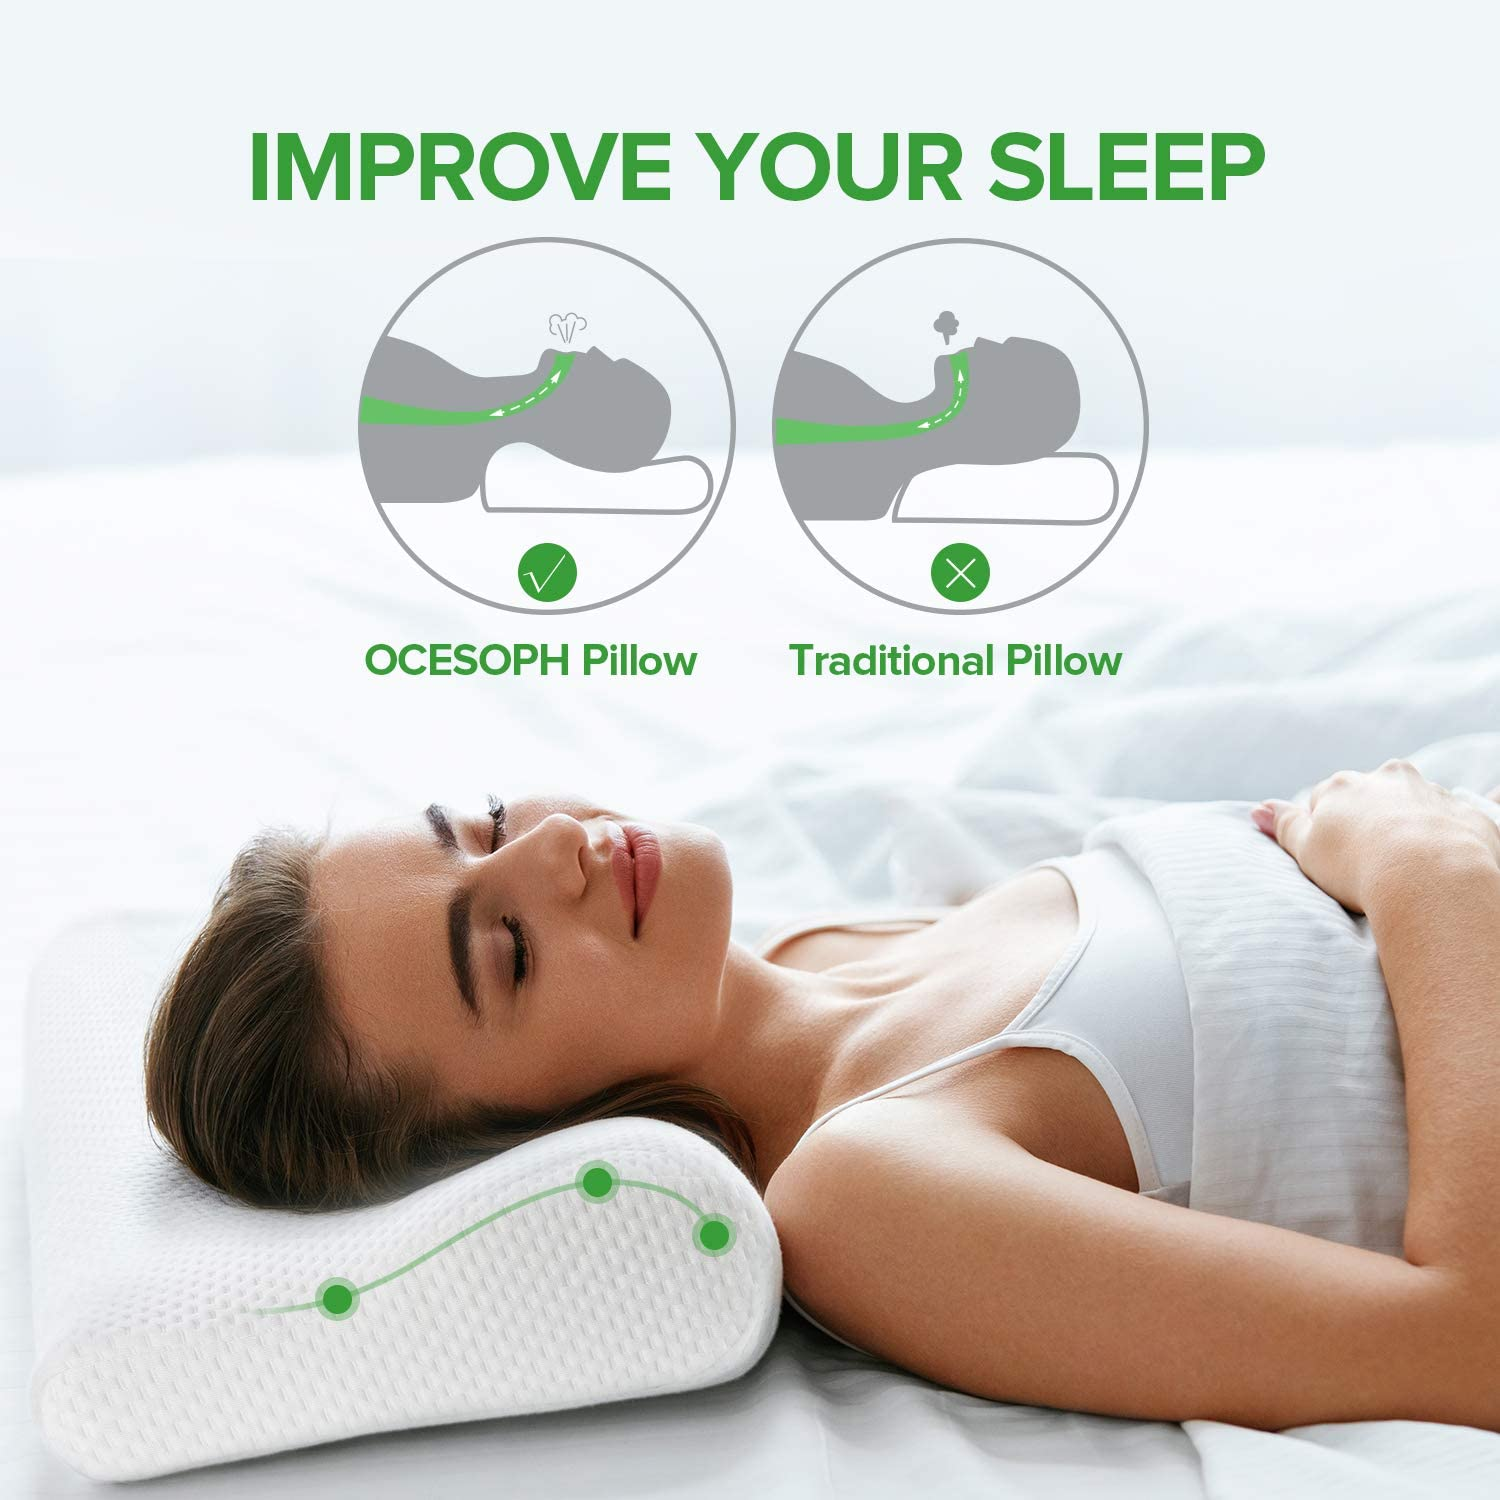 Neck Pillows for Sleeping,Memory Foam Pillow, Cervical Pillow for Neck Pain Relief, Orthopedic Contour Sleep Pillows, Bamboo Ergonomic Bed Pillow, Support for Back and Stomach for Side Sleepers